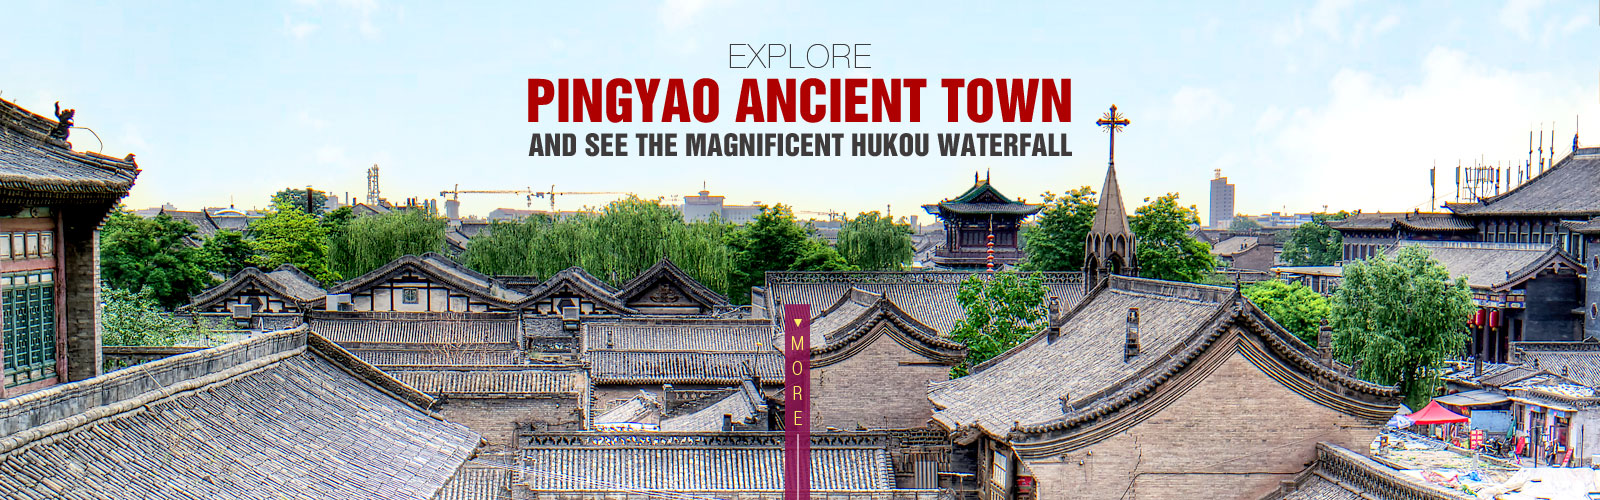 Explore Pingyao Ancient Town and see the Magnificent Hukou Waterfall